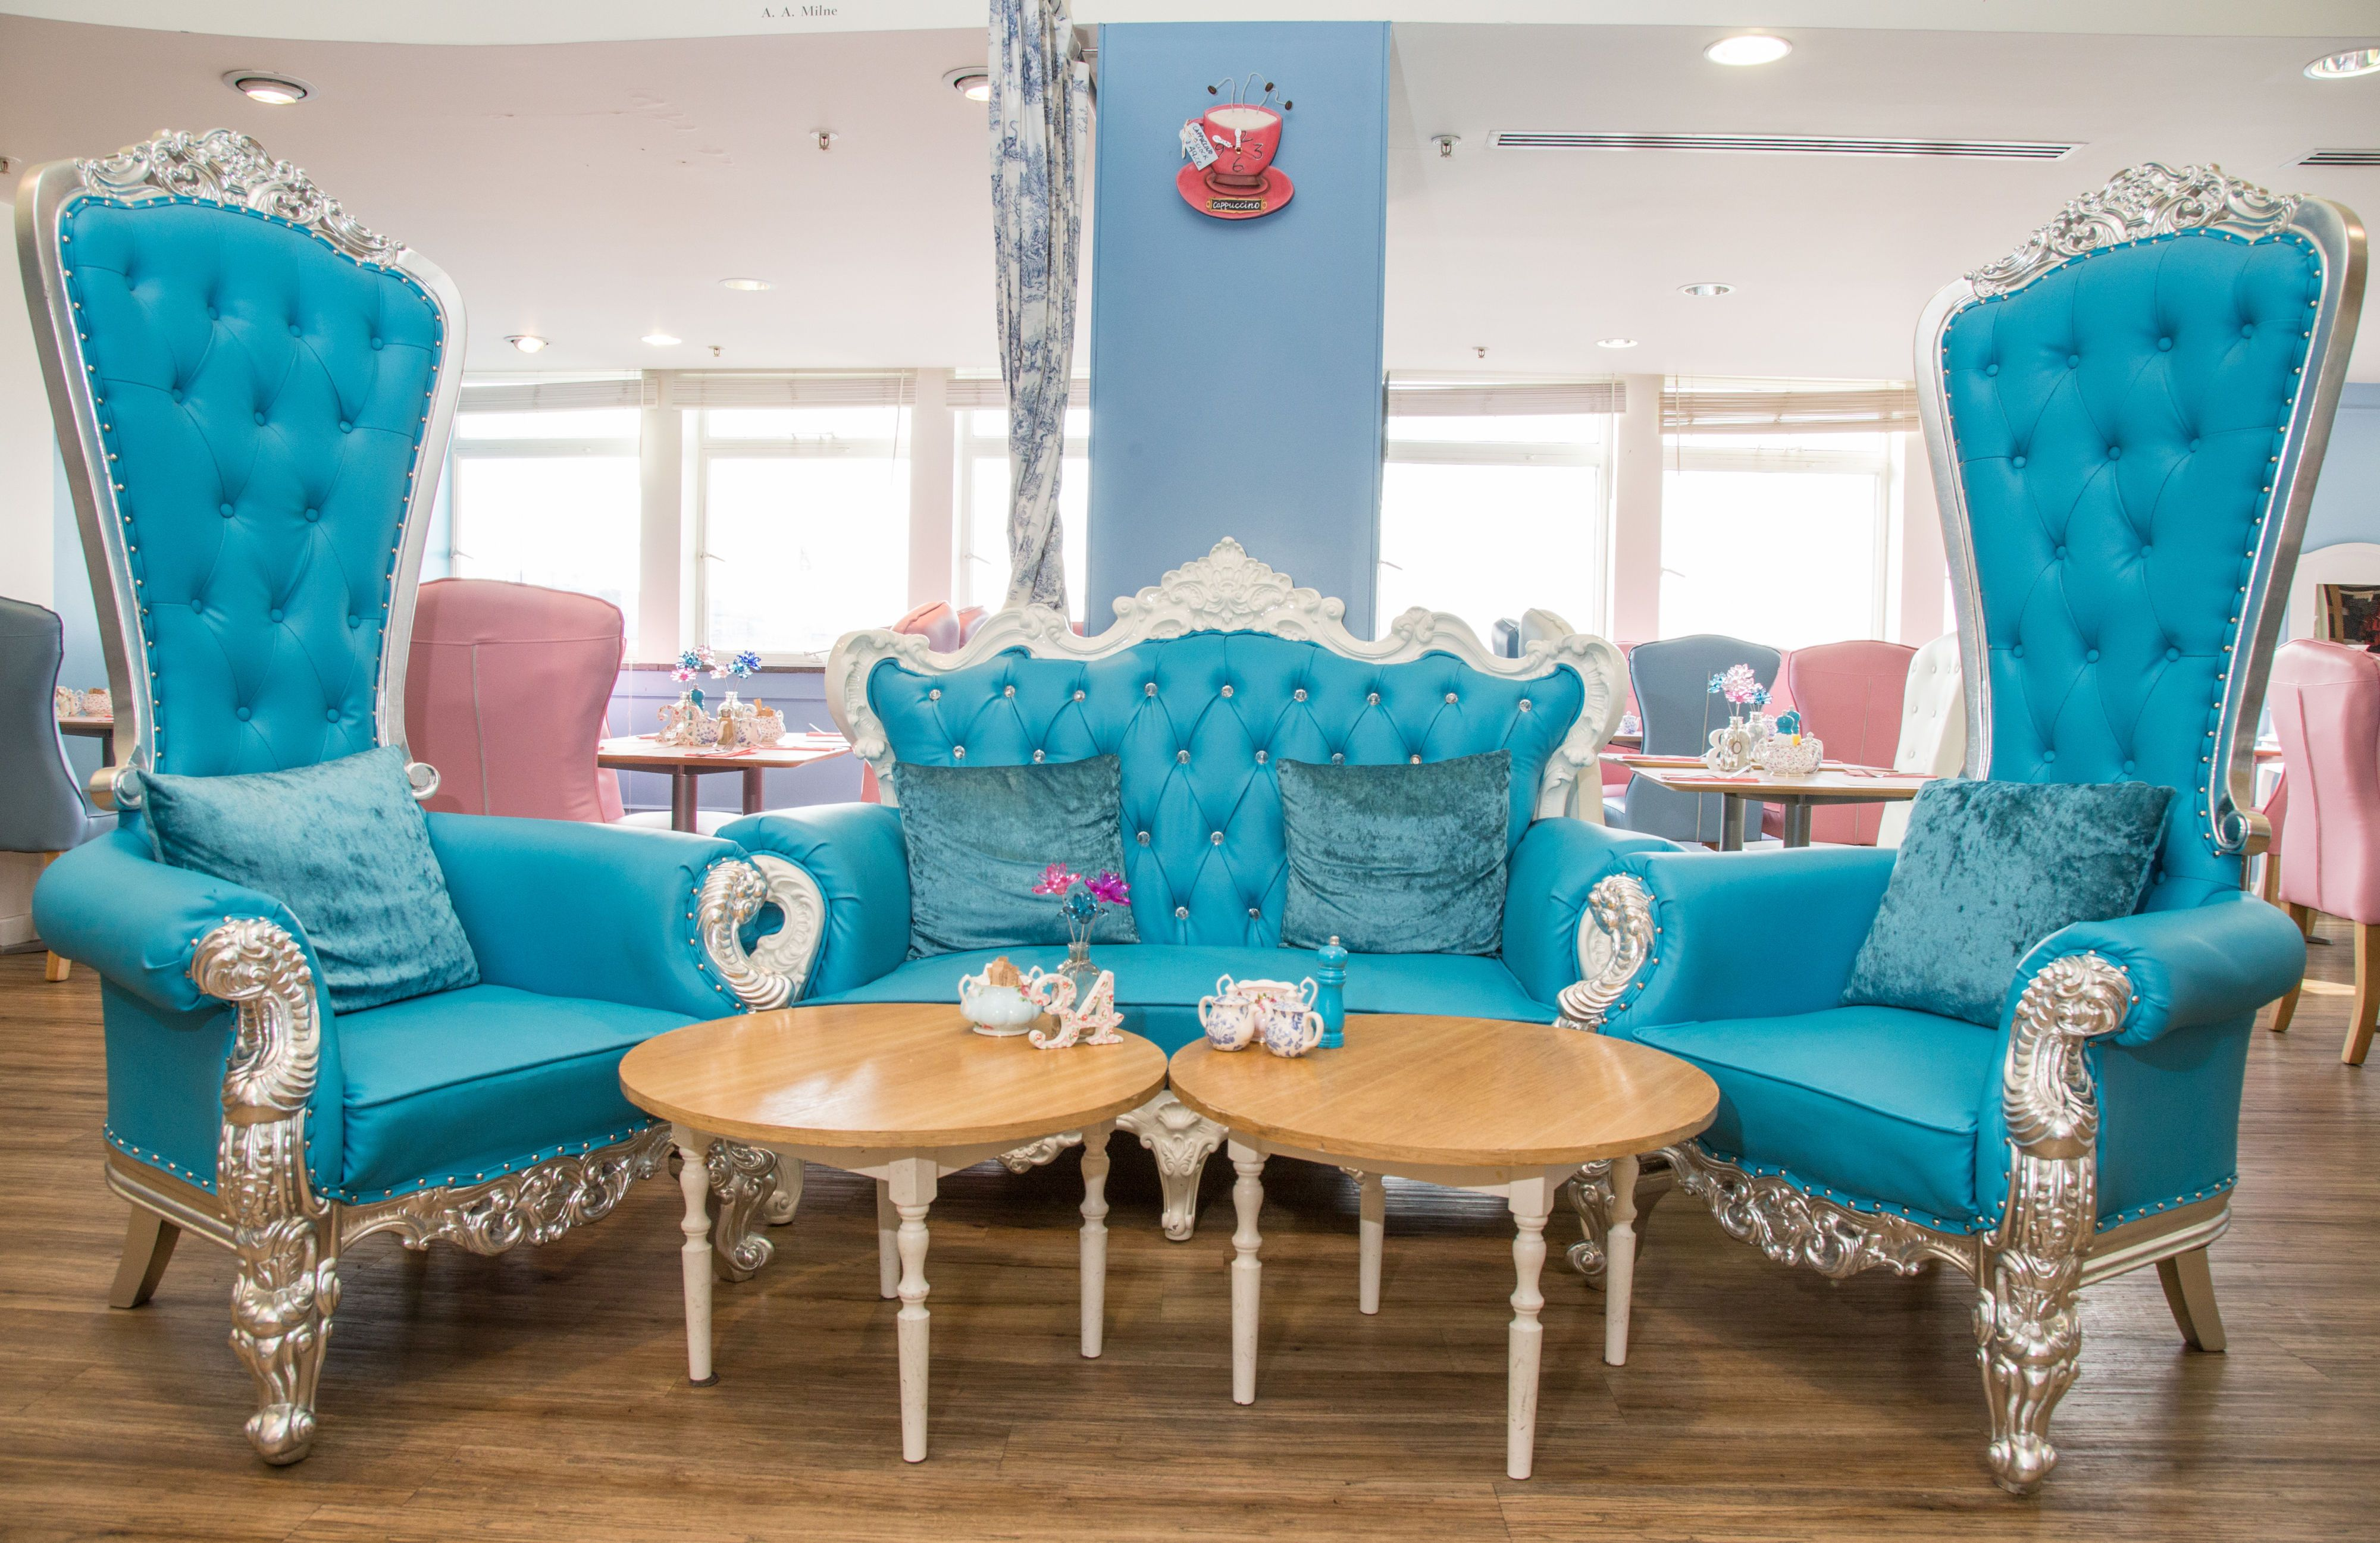 The Tea Terrace, House Of Fraser, London, Installs £16,000 Cinderella  Carriage With